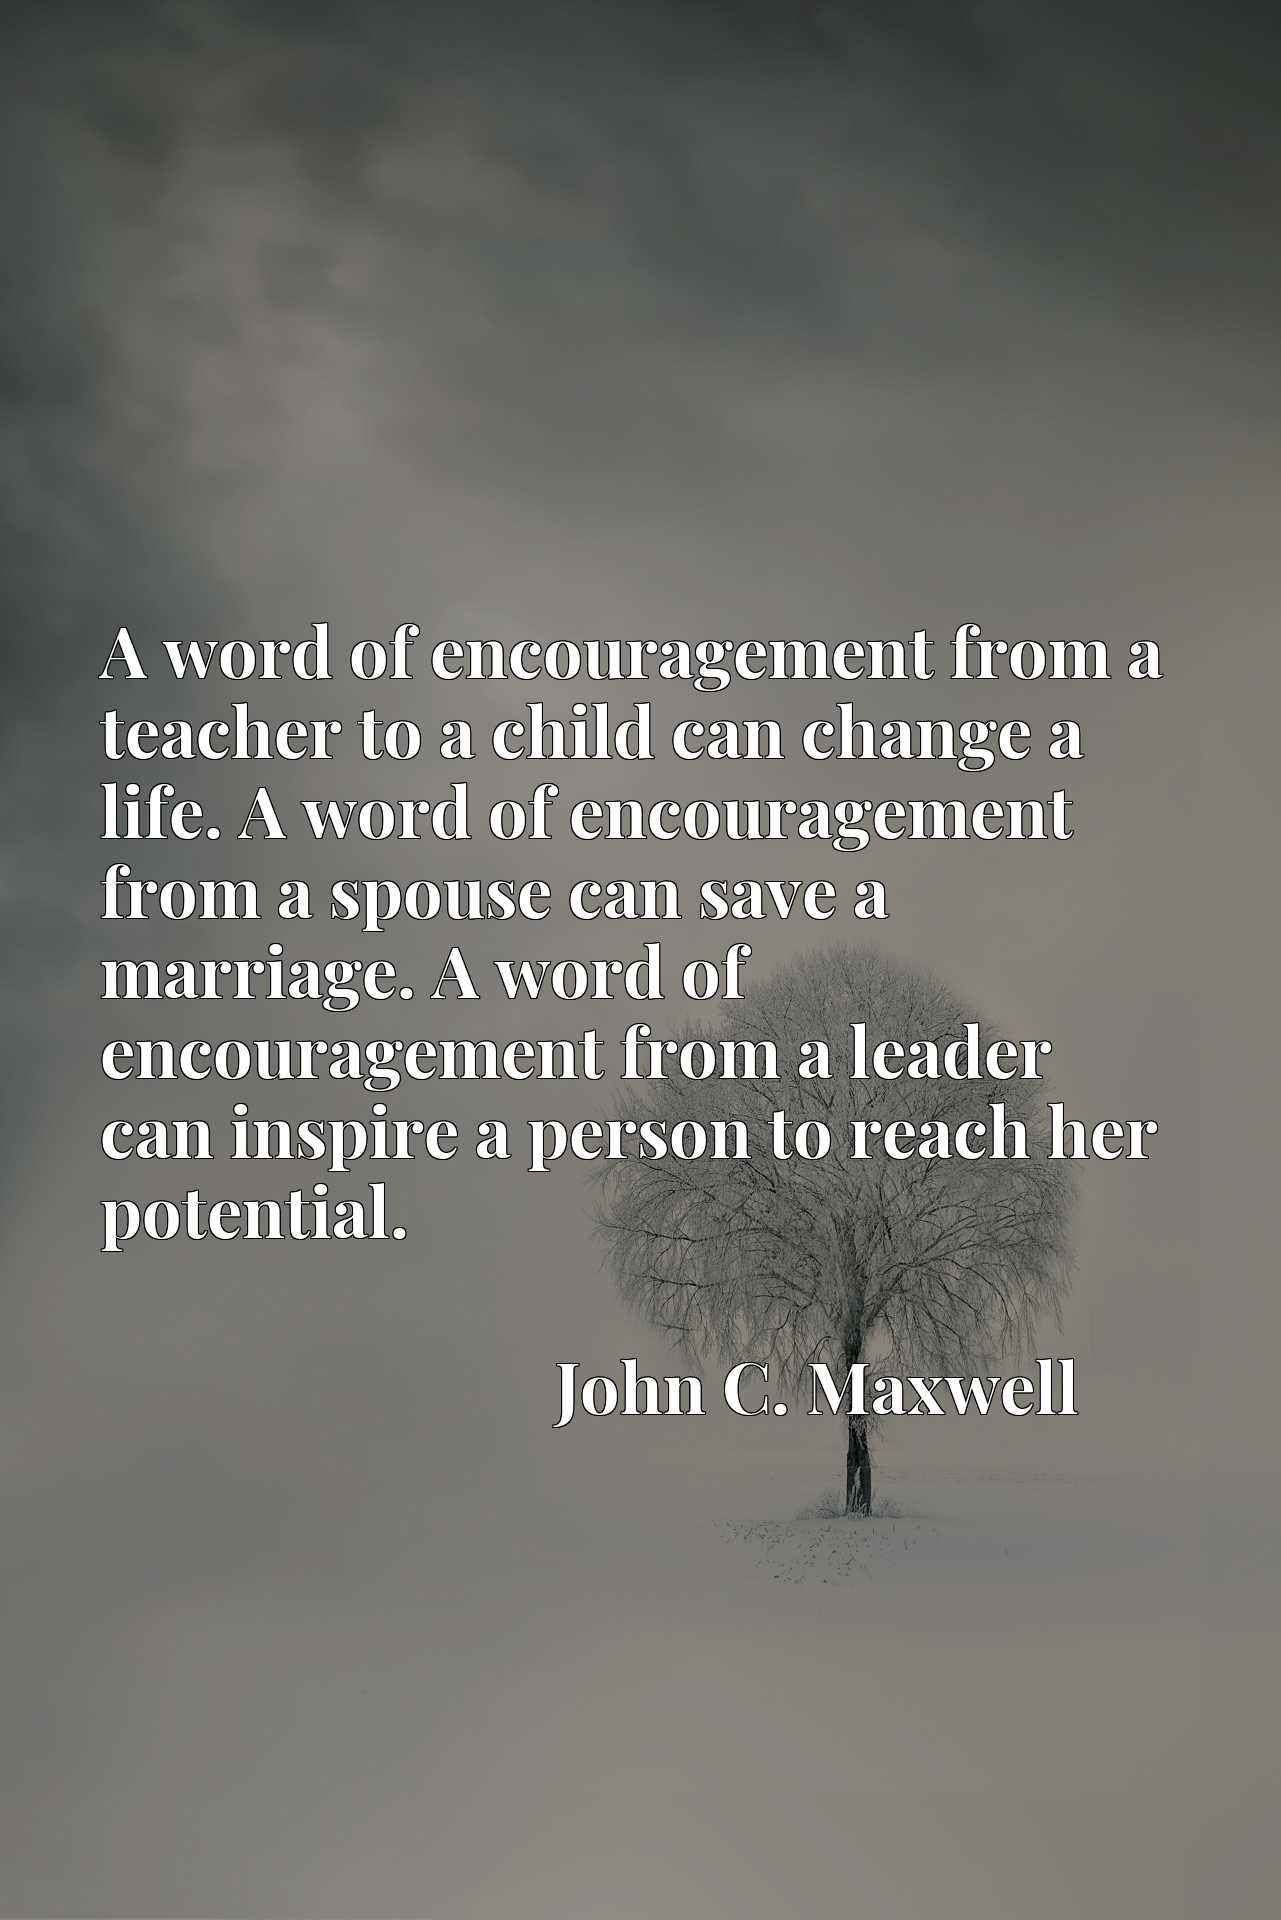 A word of encouragement from a teacher to a child can change a life. A word of encouragement from a spouse can save a marriage. A word of encouragement from a leader can inspire a person to reach her potential.